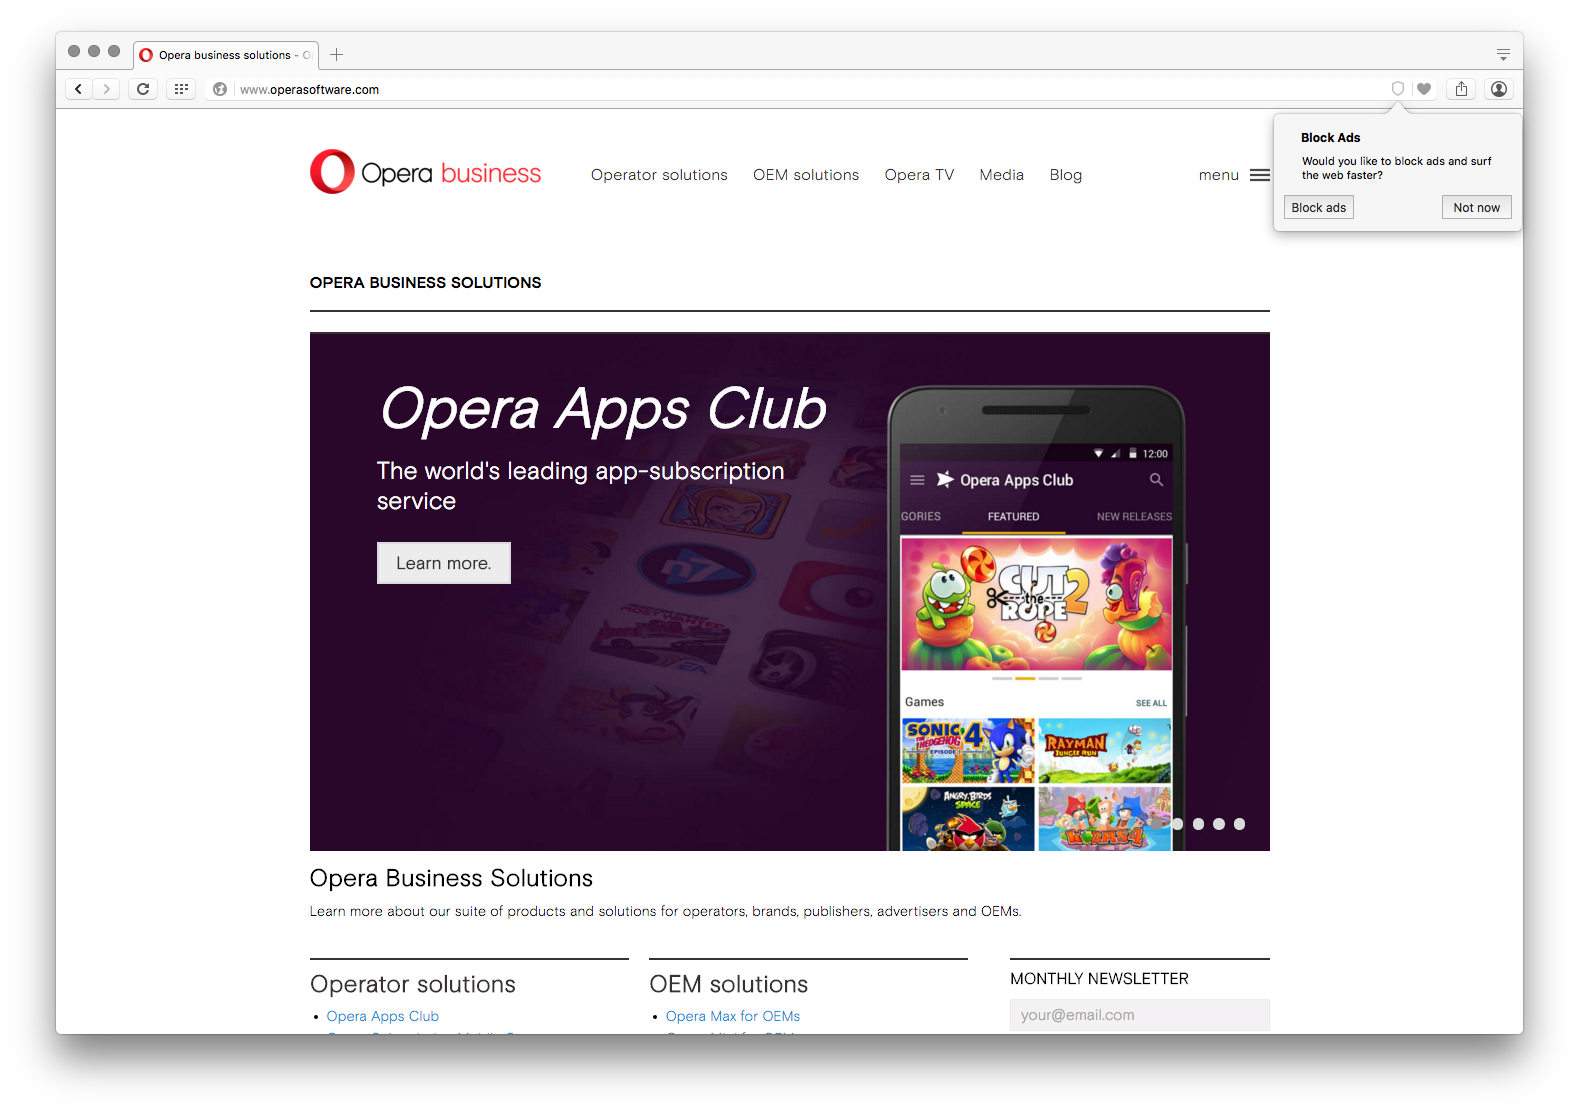 Opera Bakes Ad Blocking Technology Into Its Browse Ad Block Ads Best News Sources